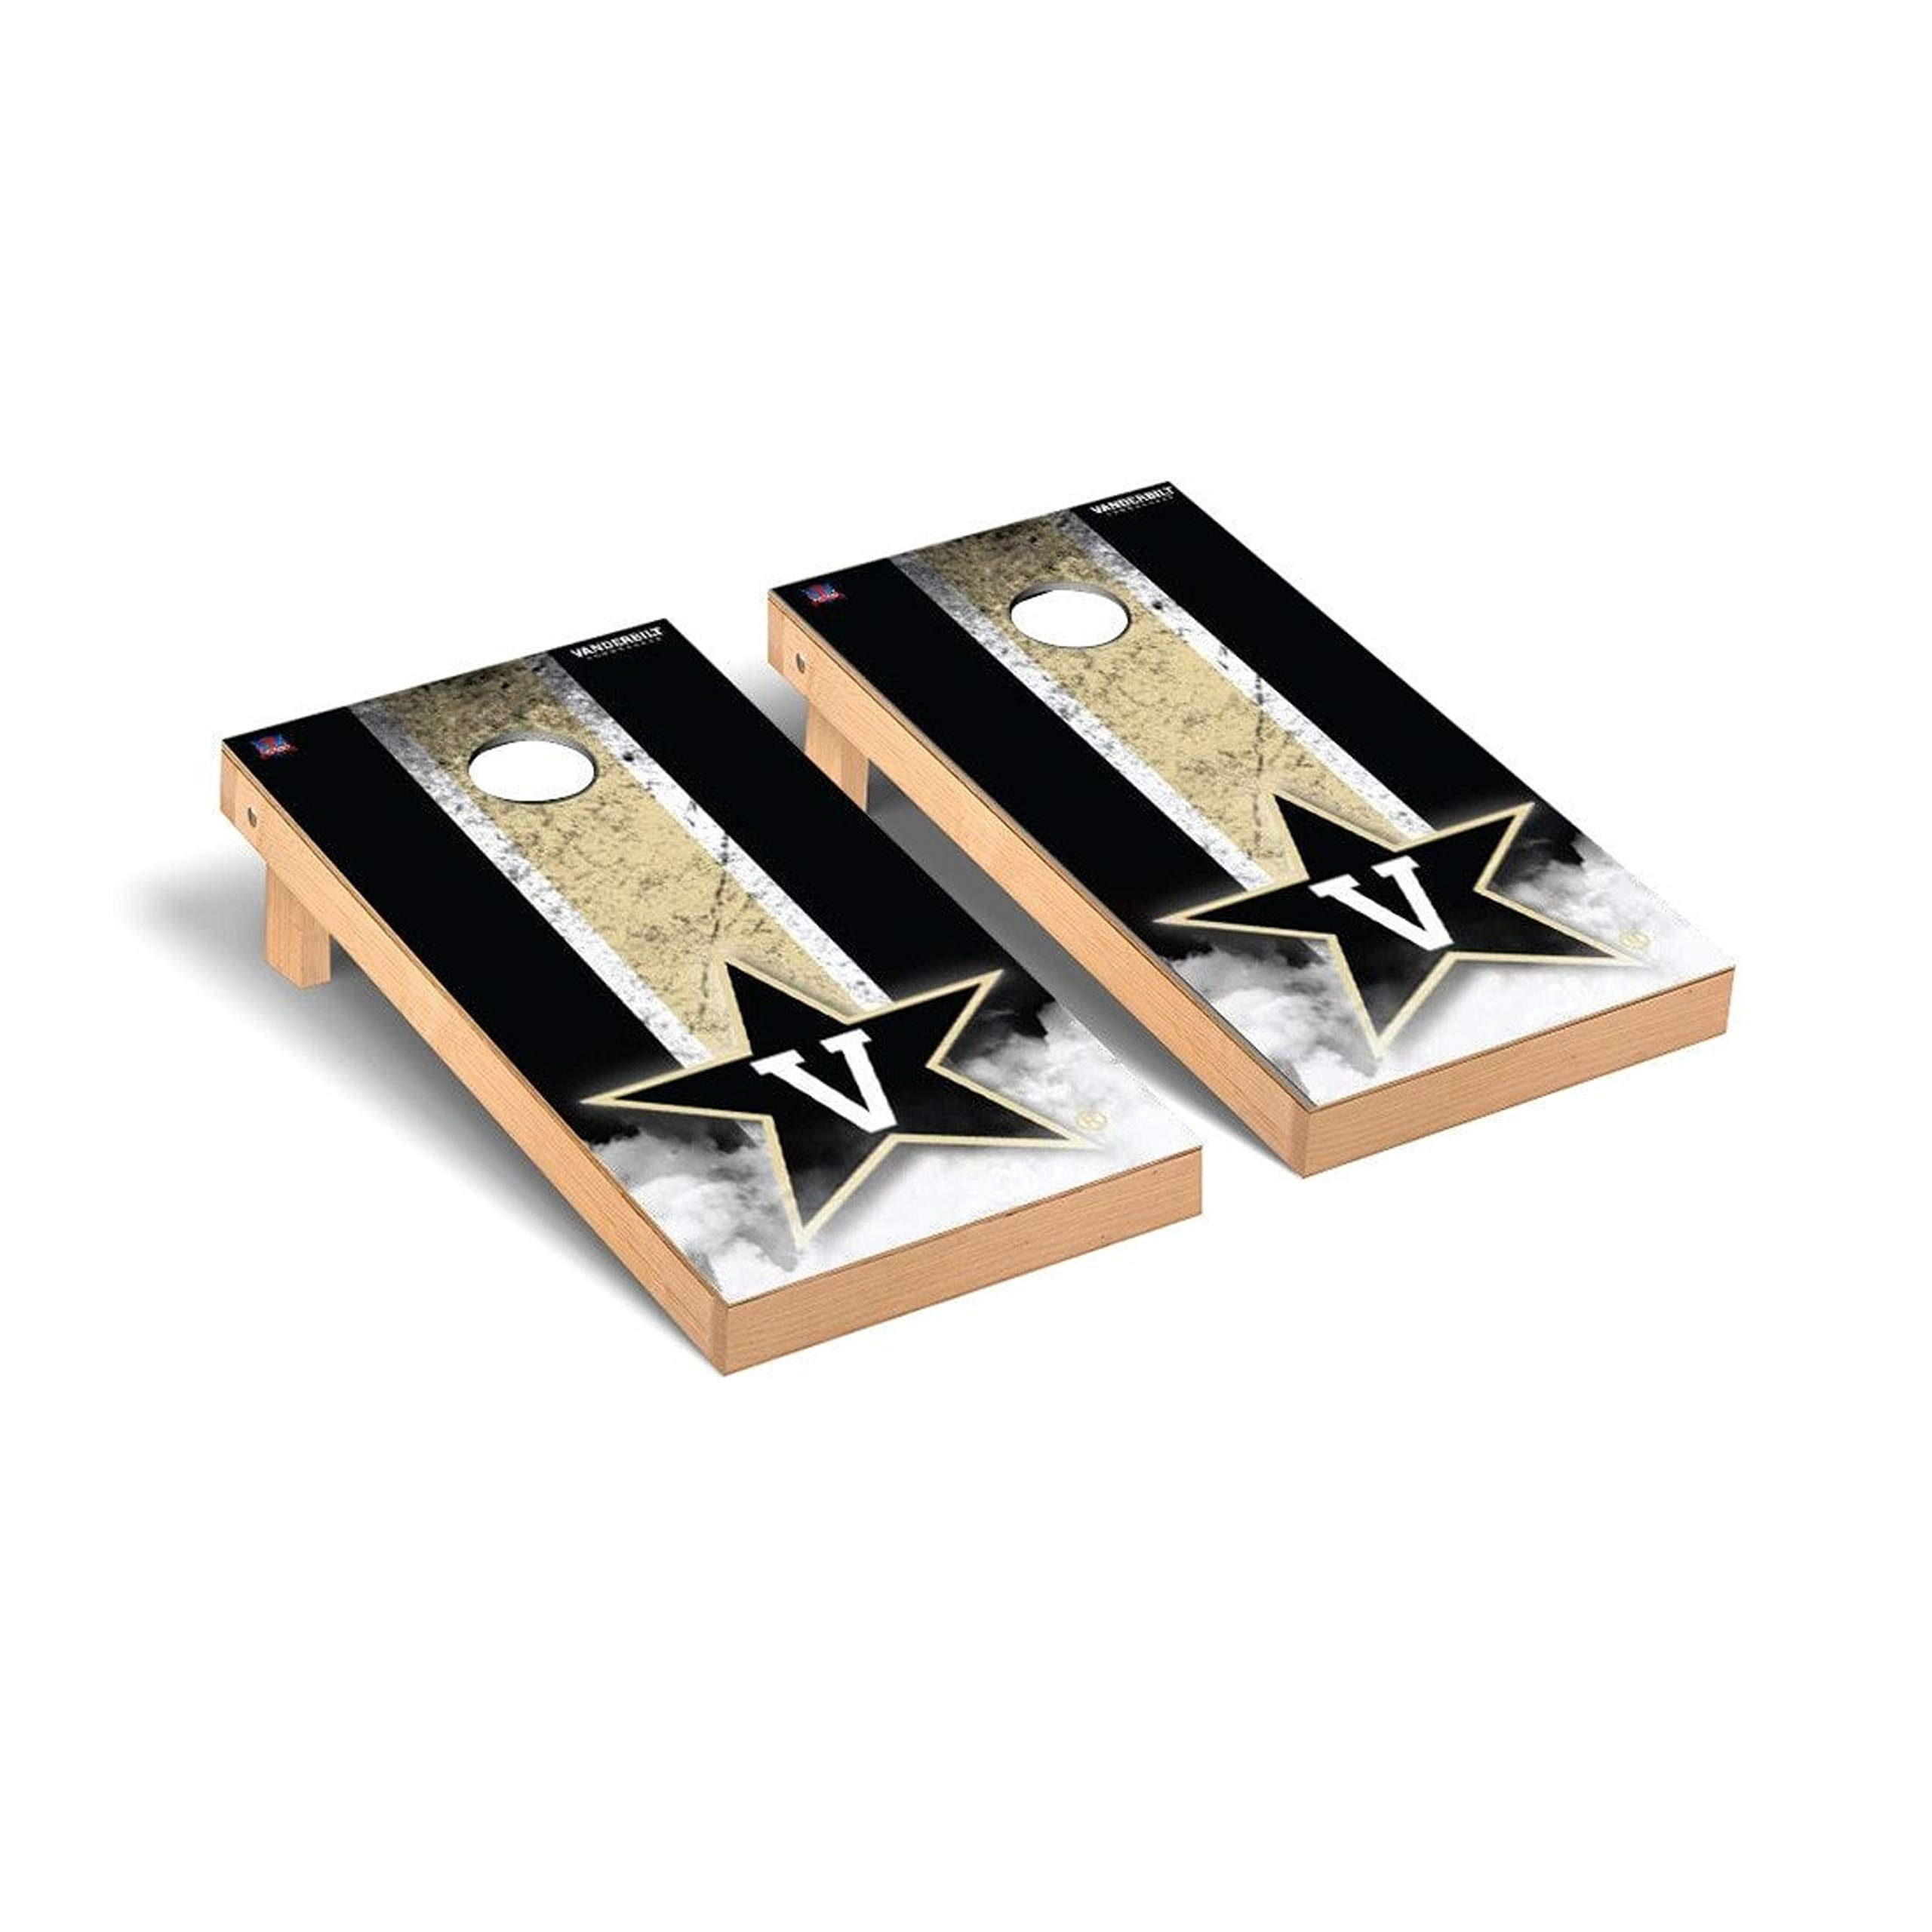 Victory Tailgate Regulation Collegiate NCAA Vintage Series Cornhole Board Set - 2 Boards, 8 Bags - Vanderbilt Commodores by Victory Tailgate